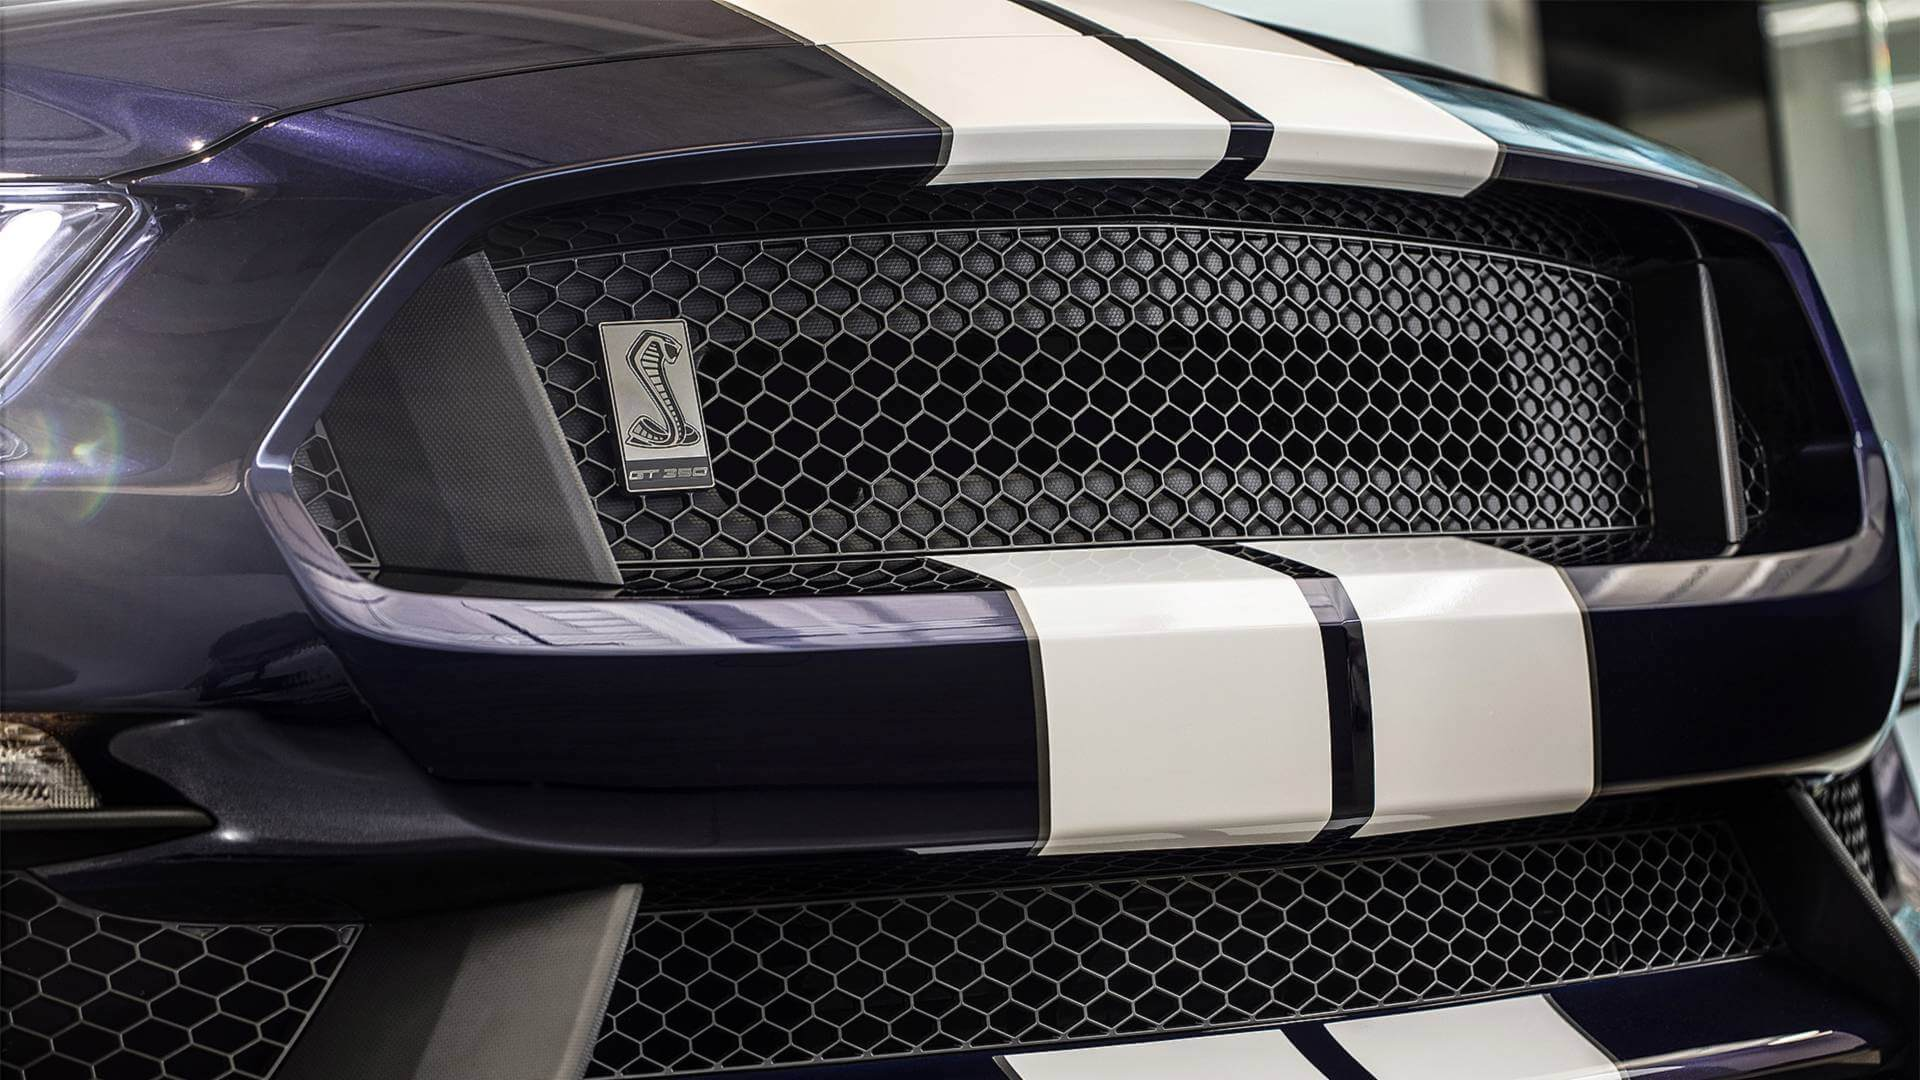 2019-ford-mustang-shelby-gt350 (5) | Mustang Fan Club